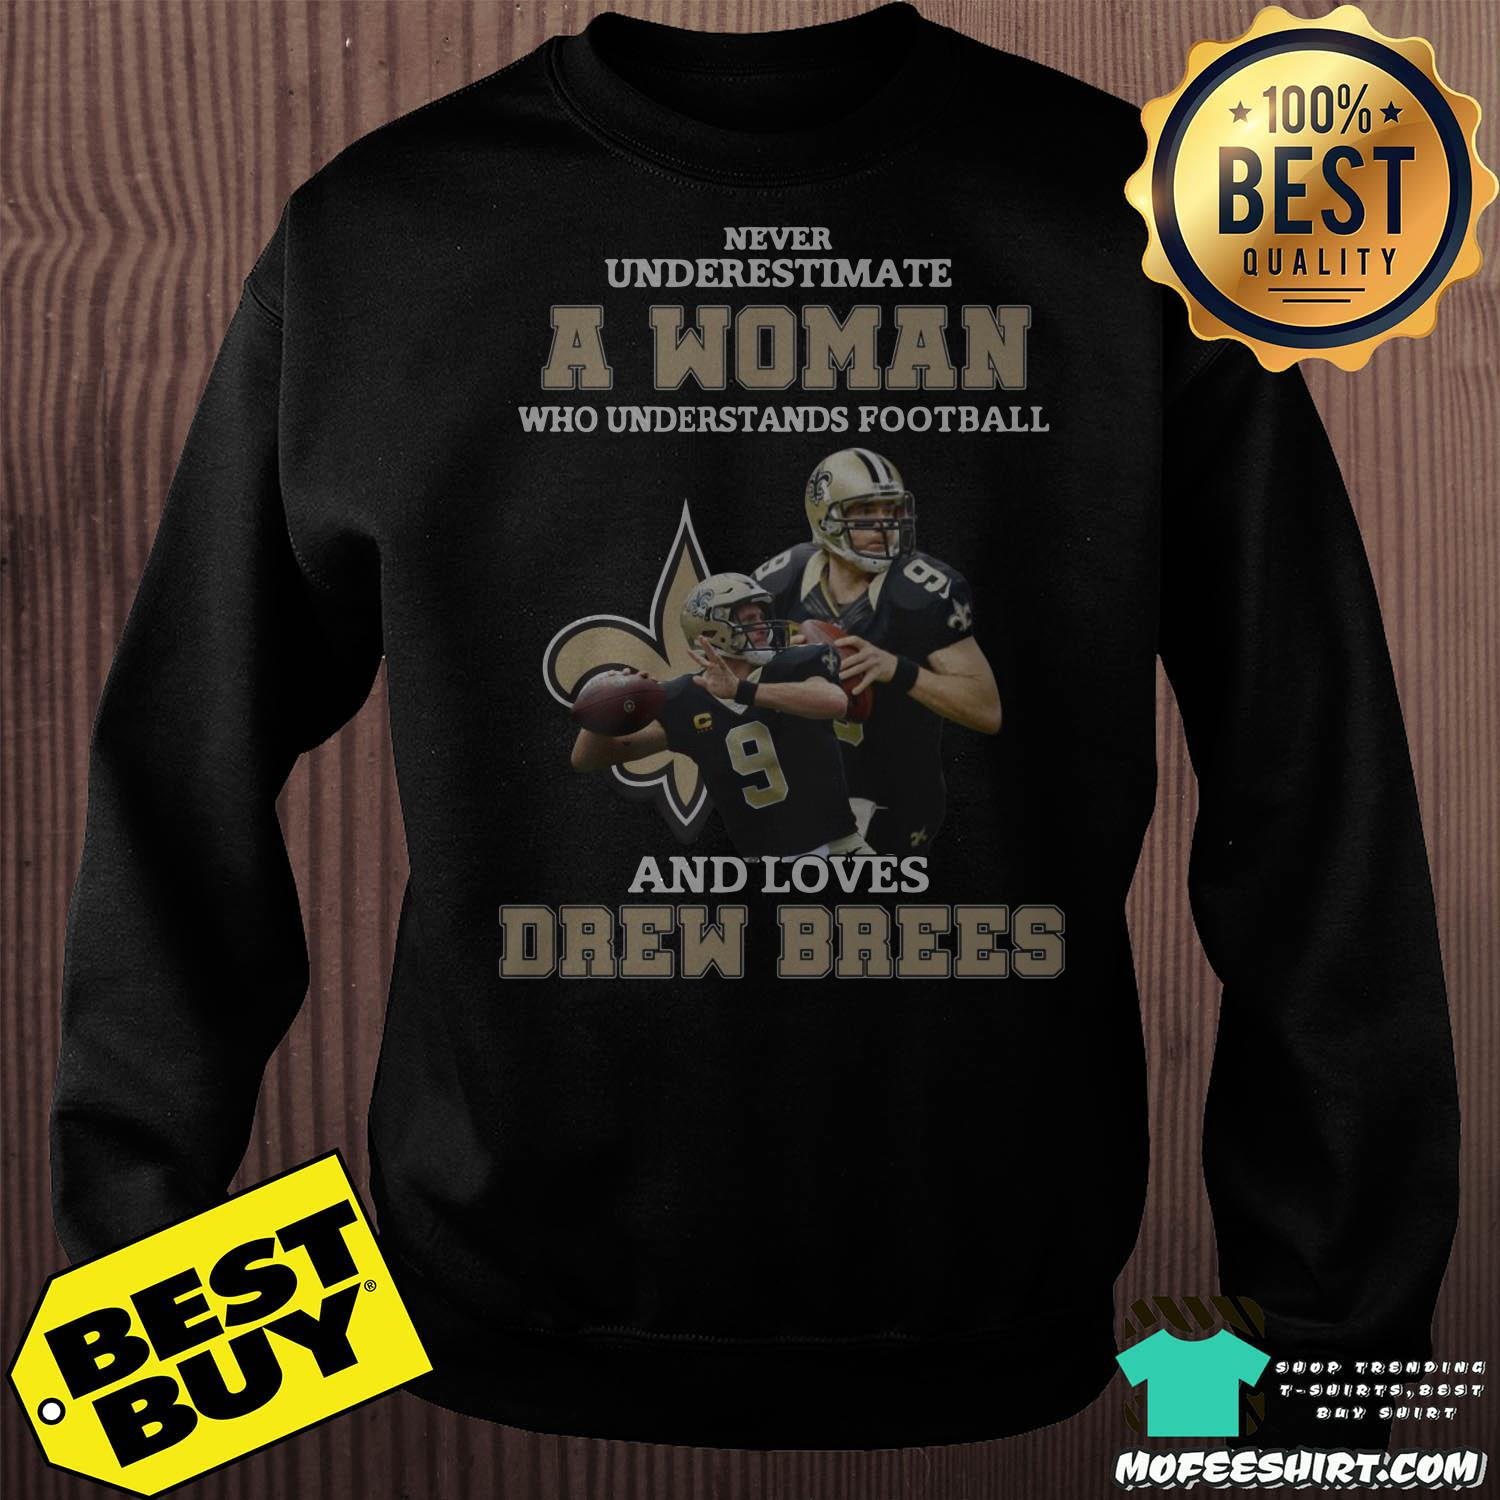 Never underestimate A Woman Who Understands Football And Loves Drew Brees Shirt